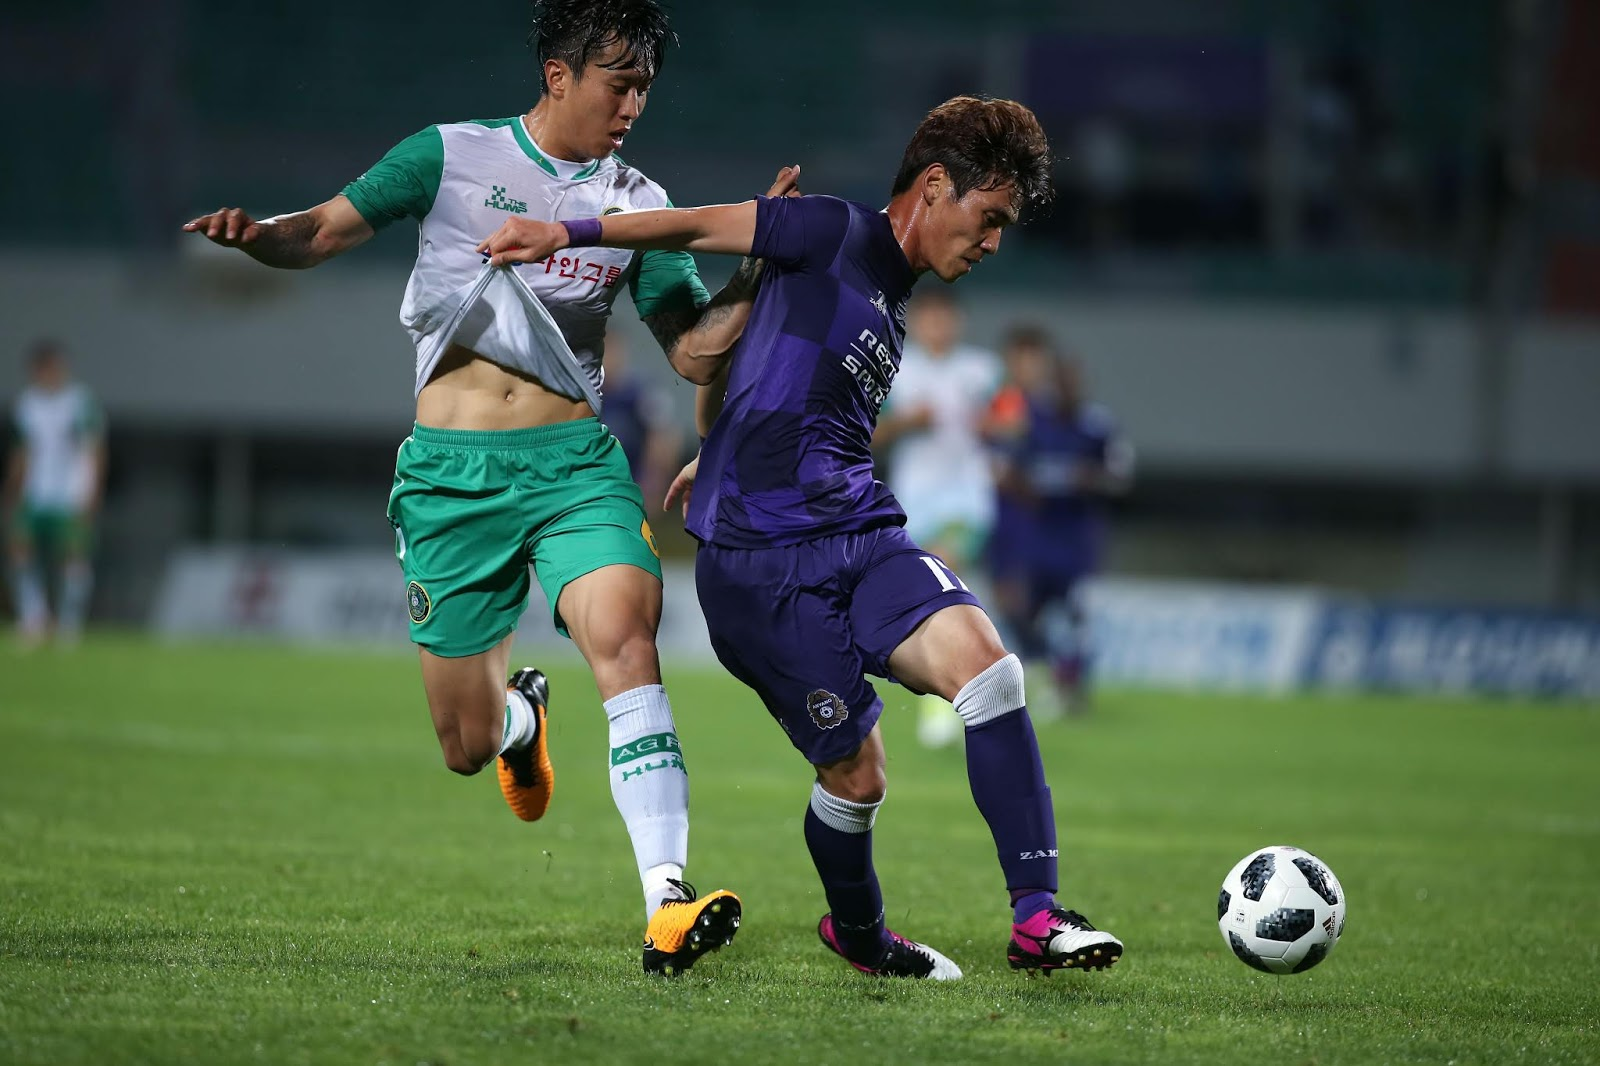 Preview: Ansan Greeners Vs Asan Mugunghwa K League 2 Round 18